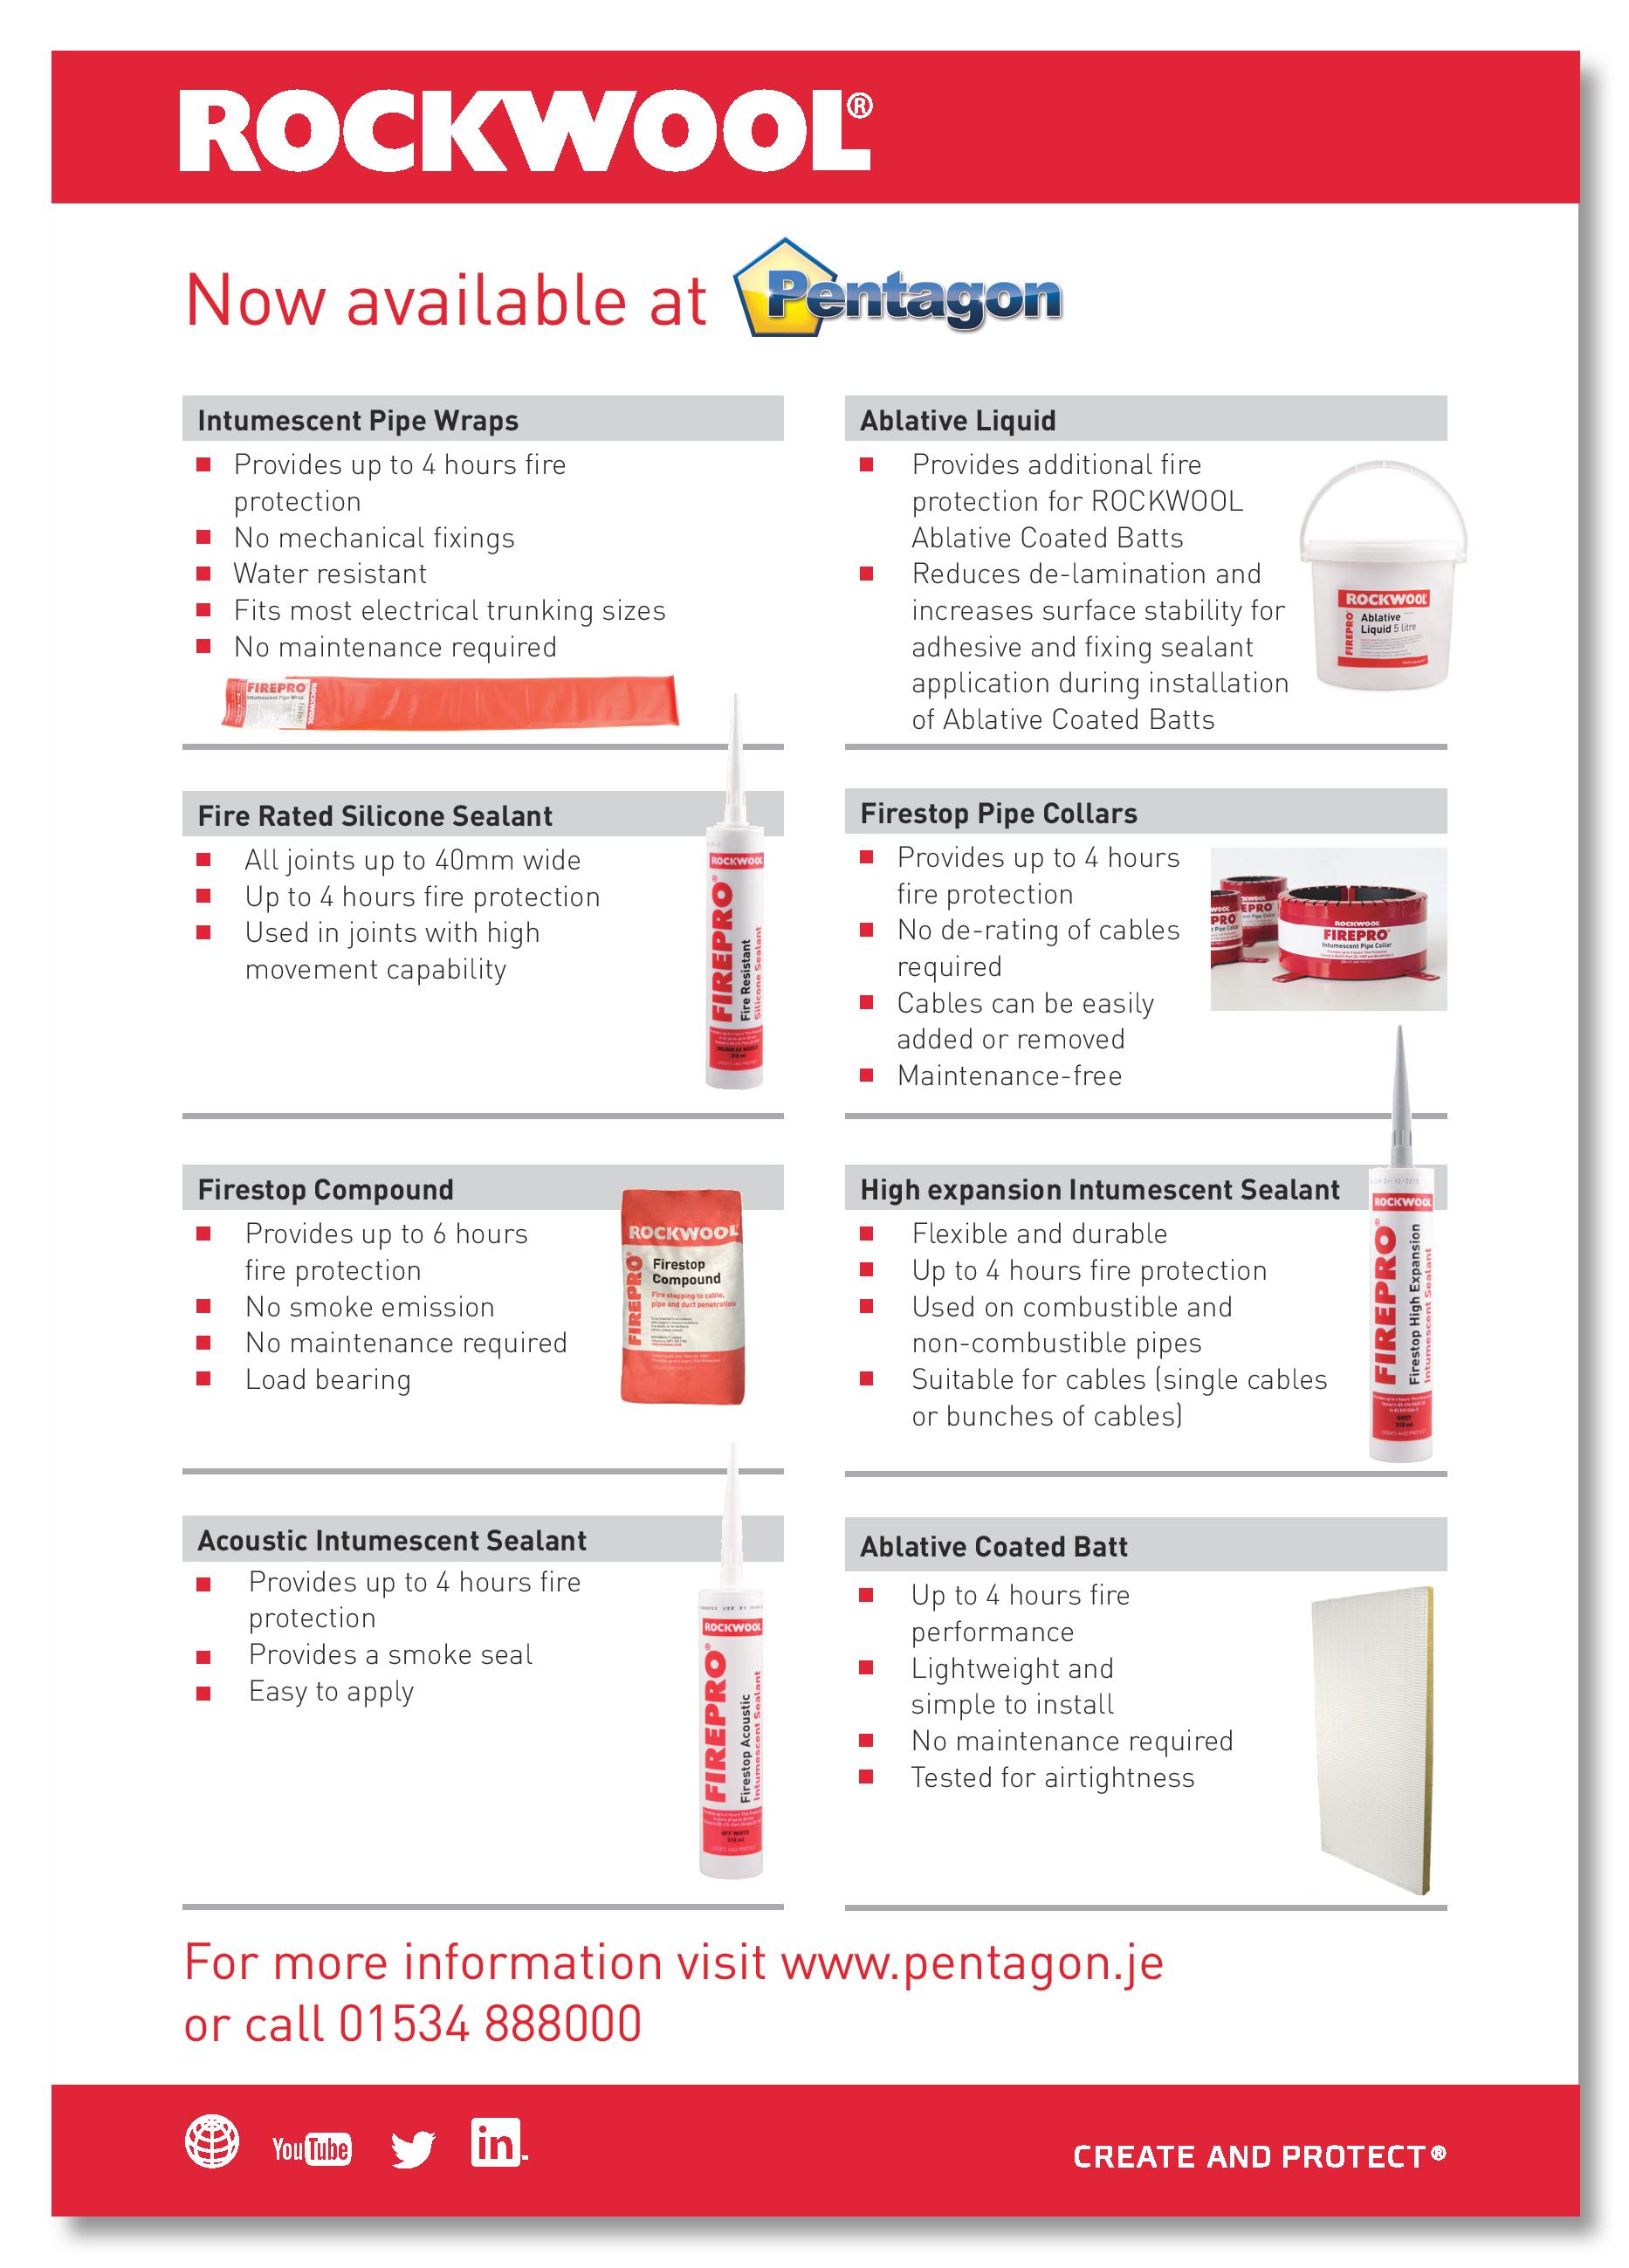 09 Pentagon Rockwool Flyer Page 001